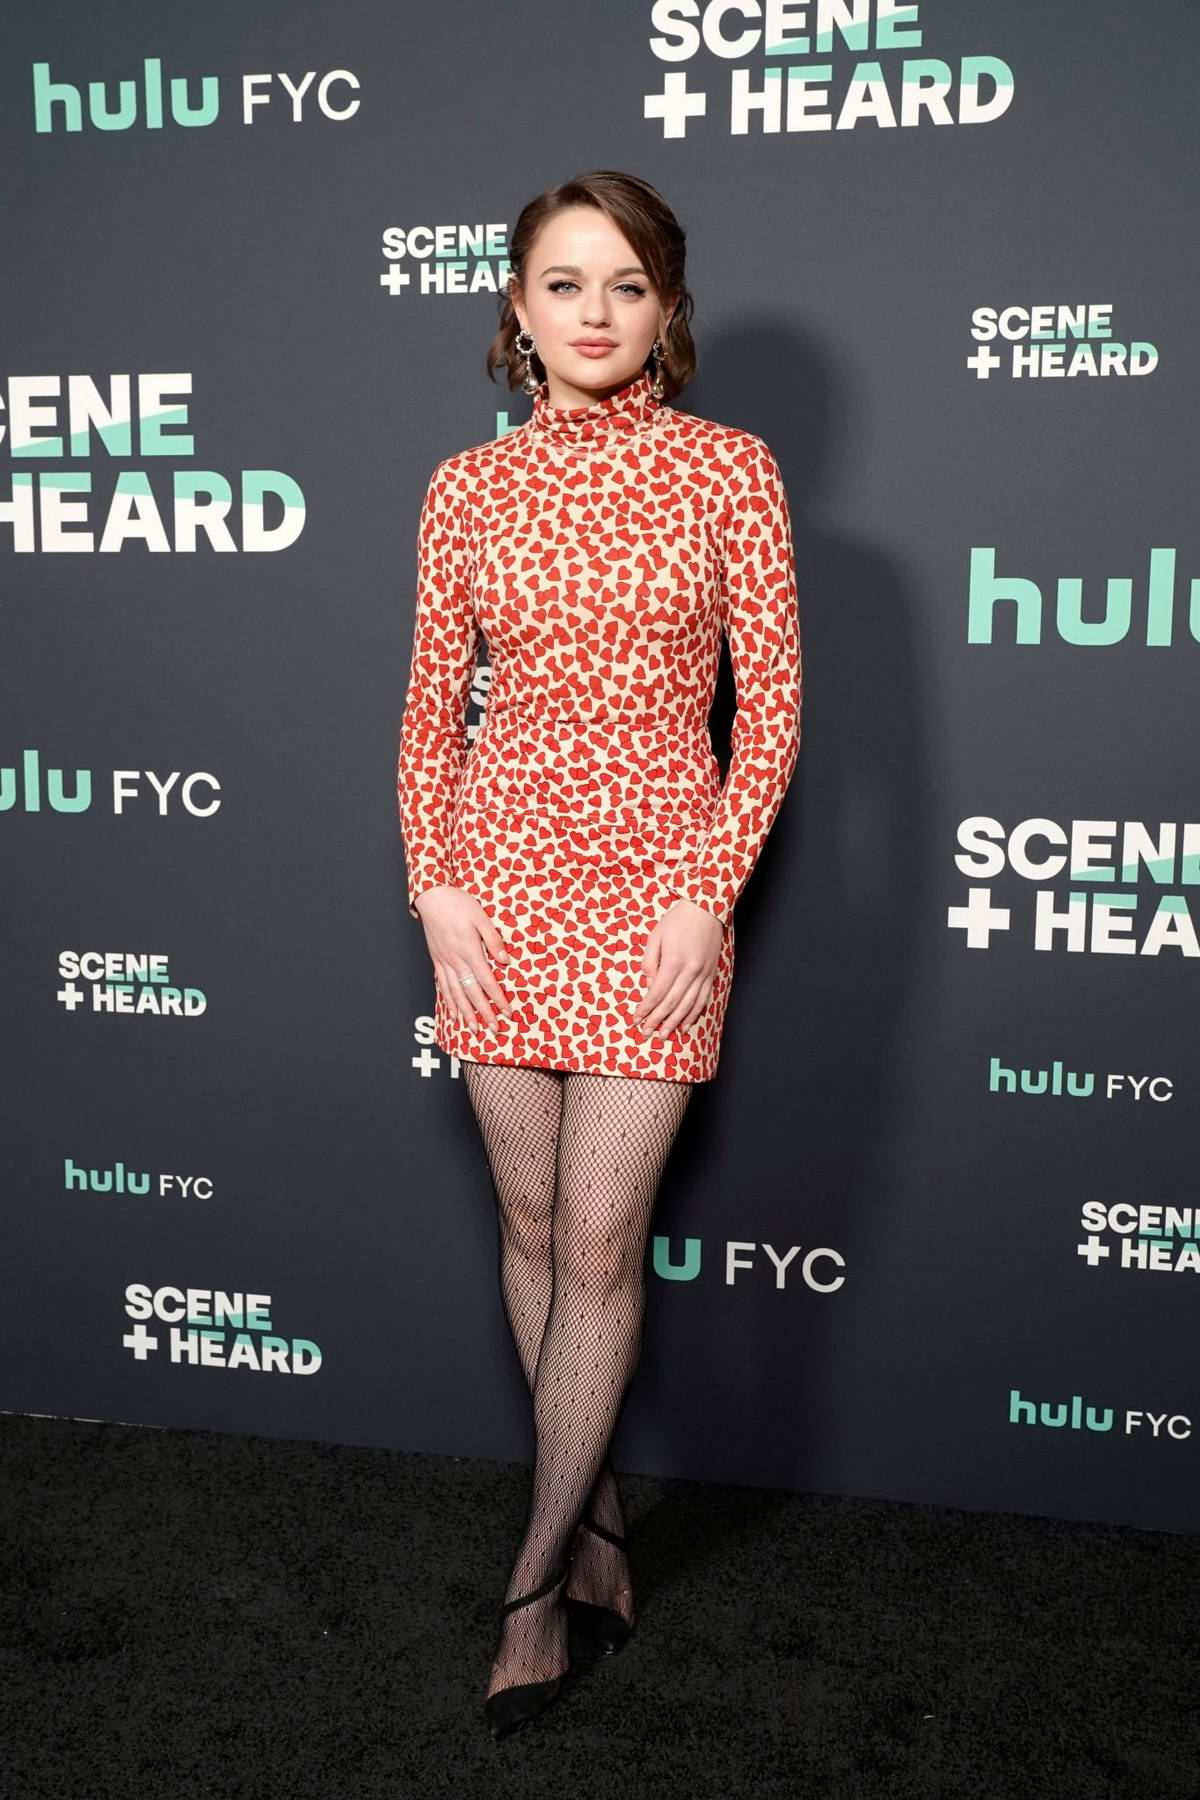 Joey King attends the Hulu 'Scene and Heard' SAG event in West Hollywood, Los Angeles